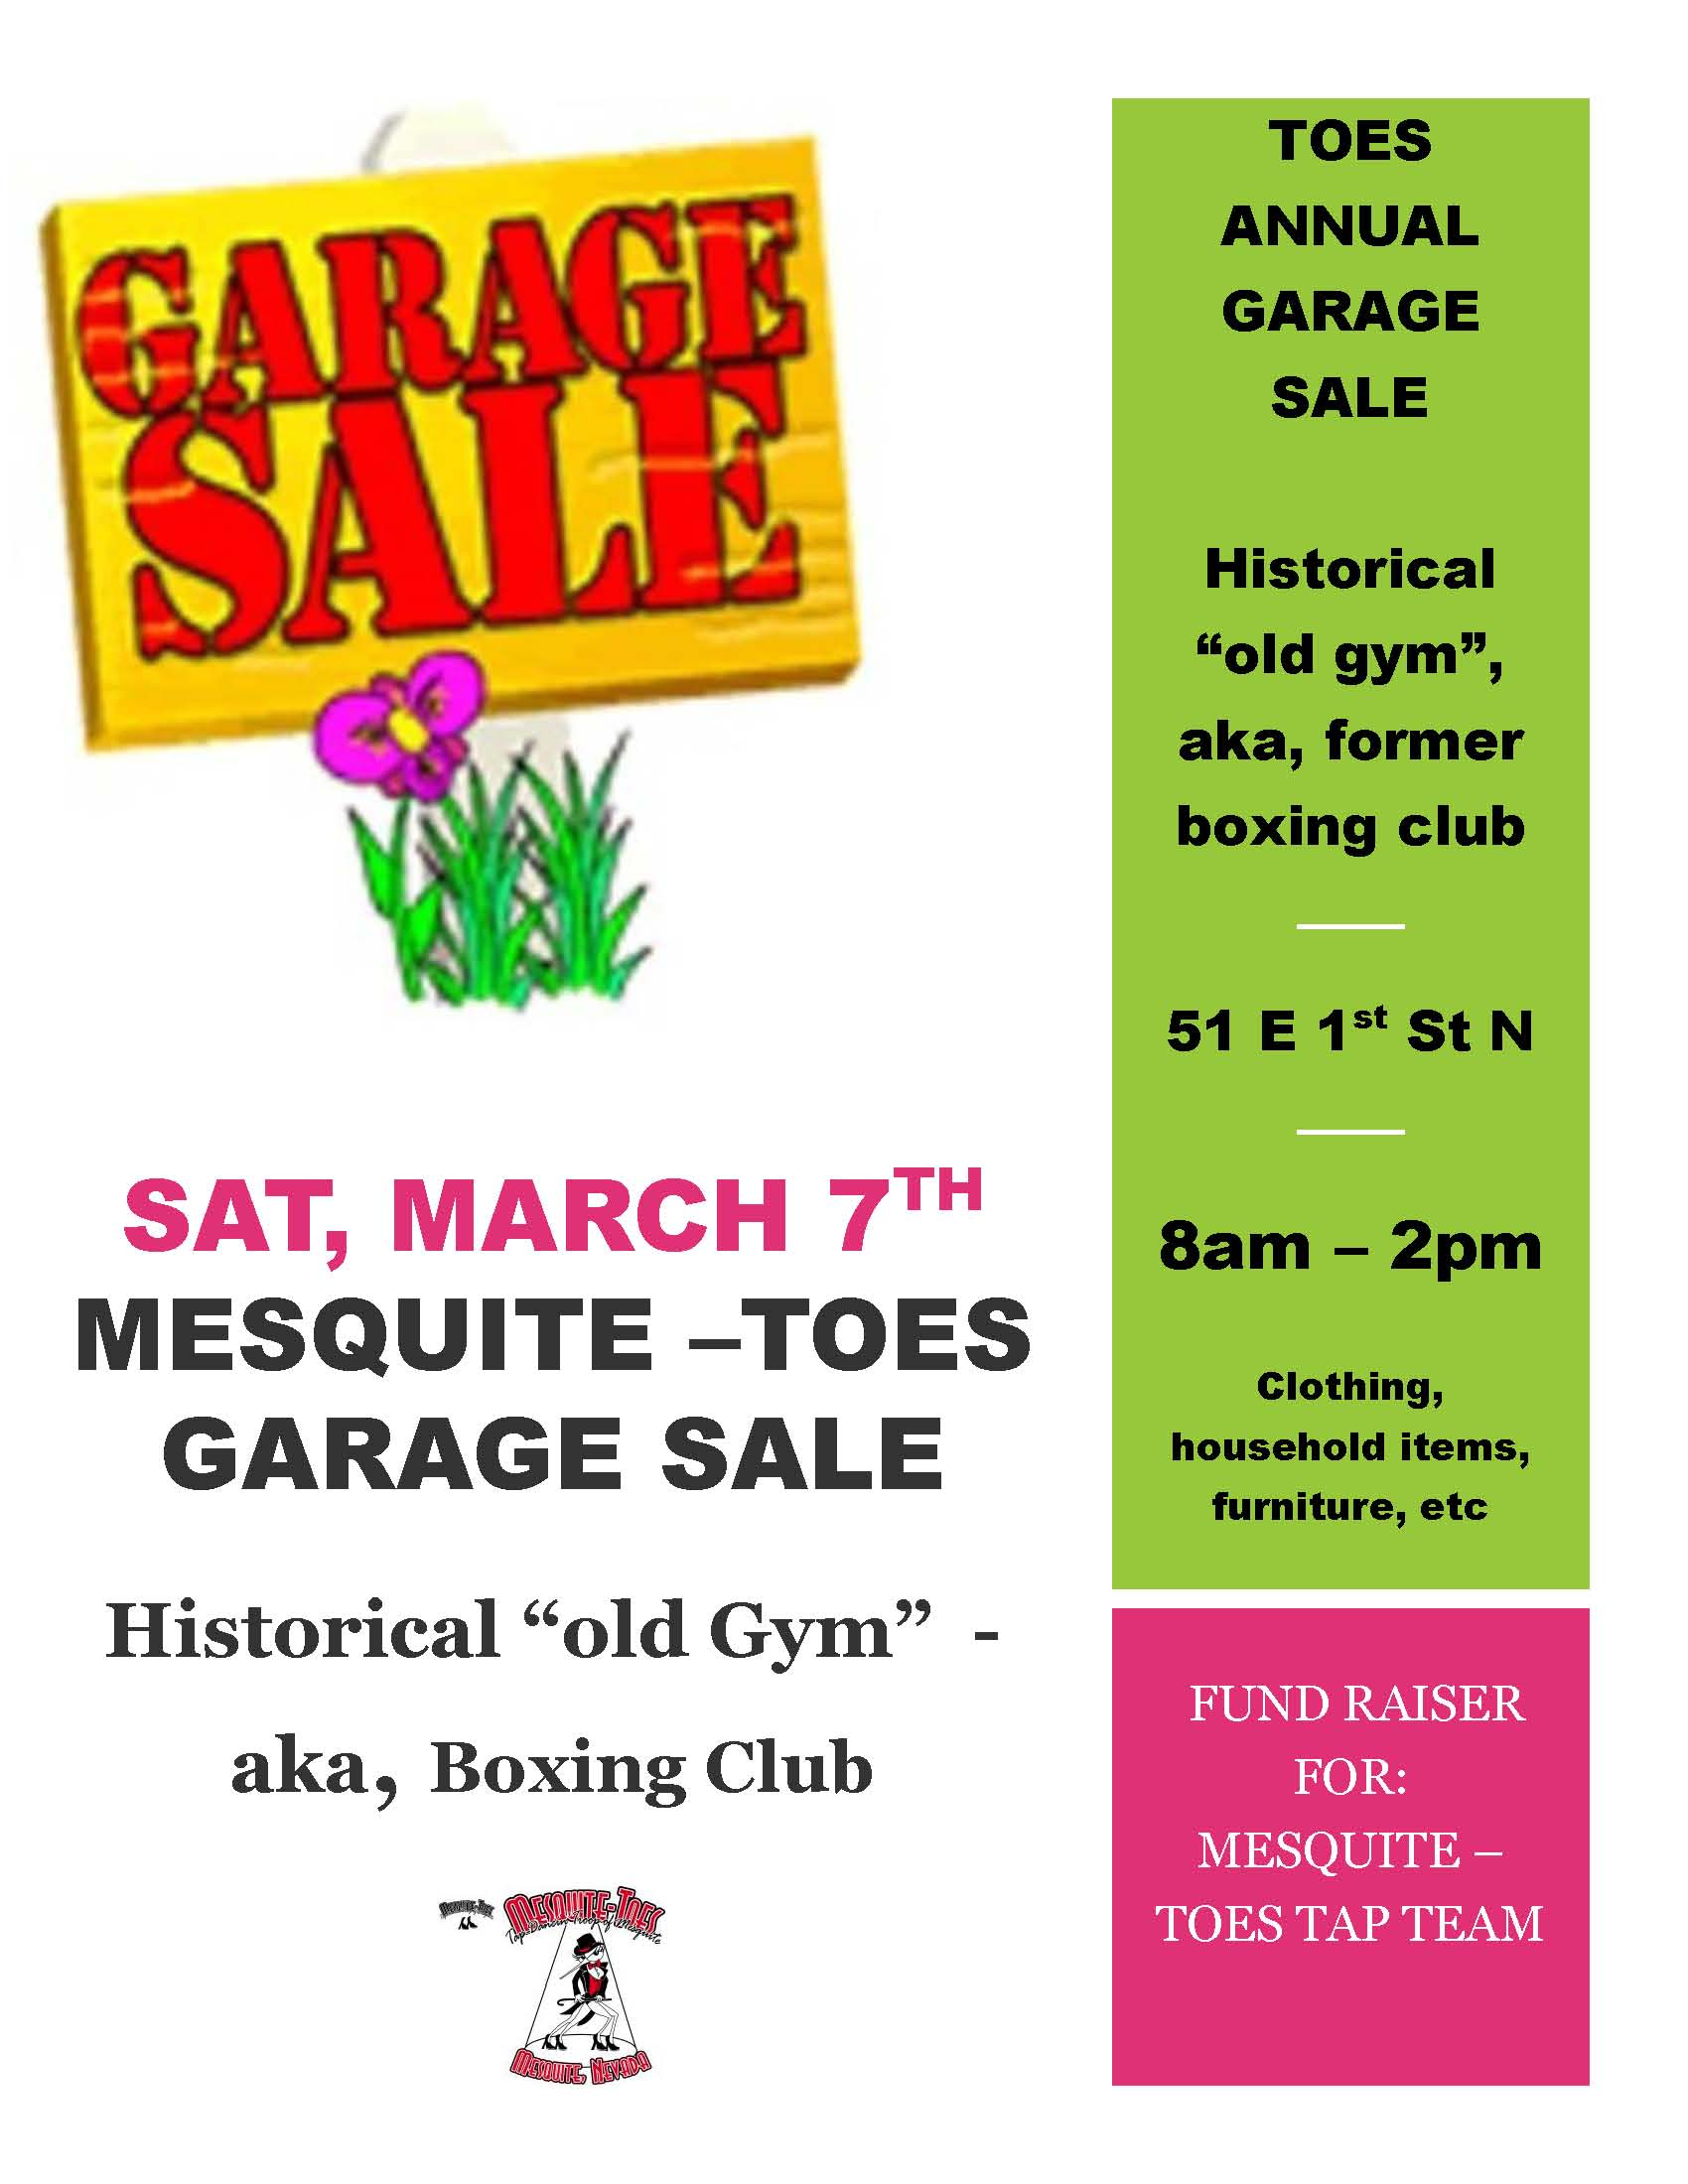 Mesquite Toes Fundraiser Garage Sale Tomorrow, March 7